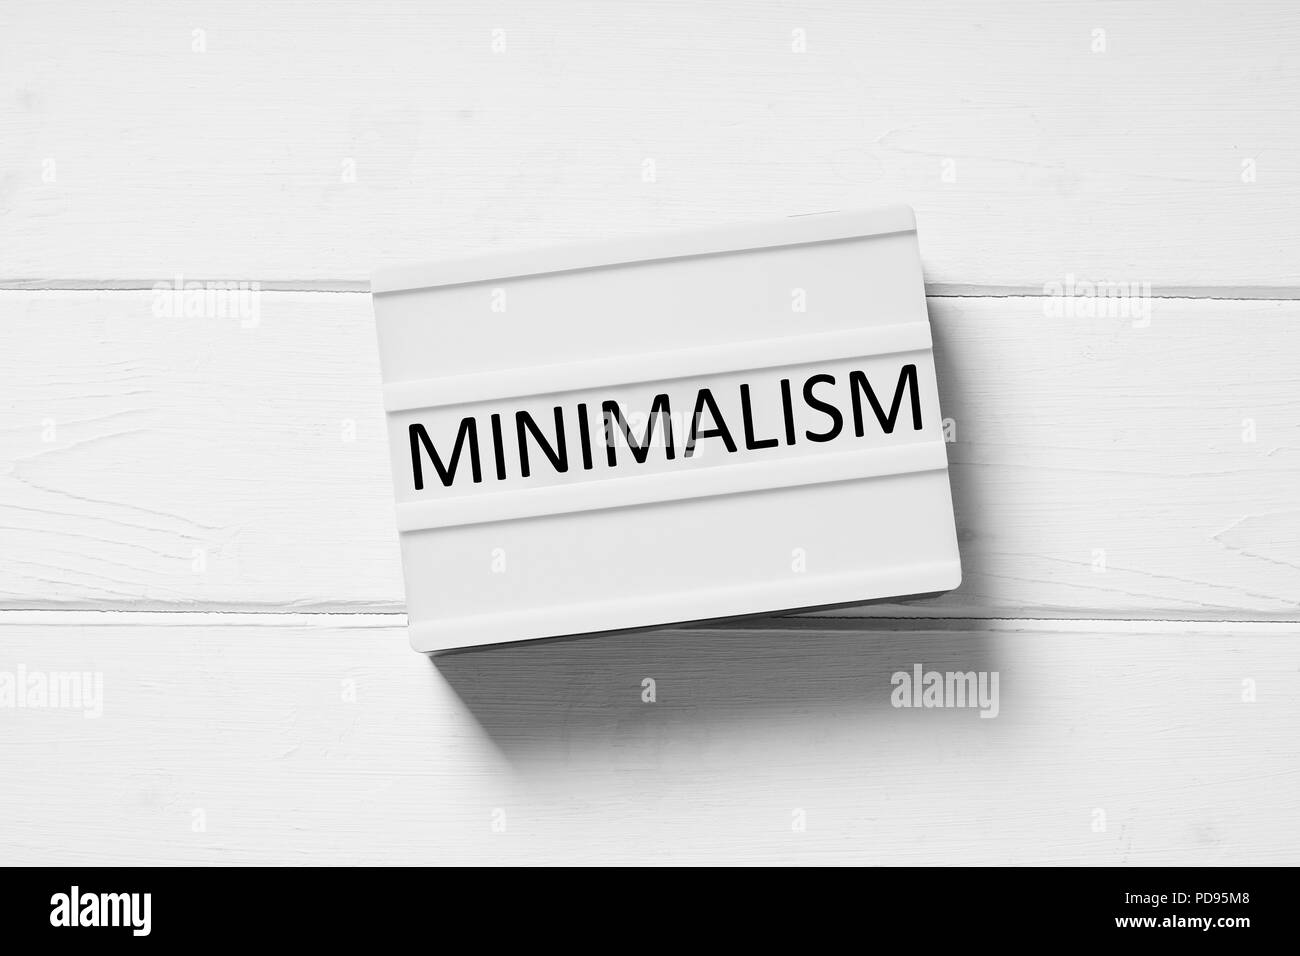 minimalism text on lightbox sign, minimal flat lay design on white wooden background, simplicity concept - Stock Image